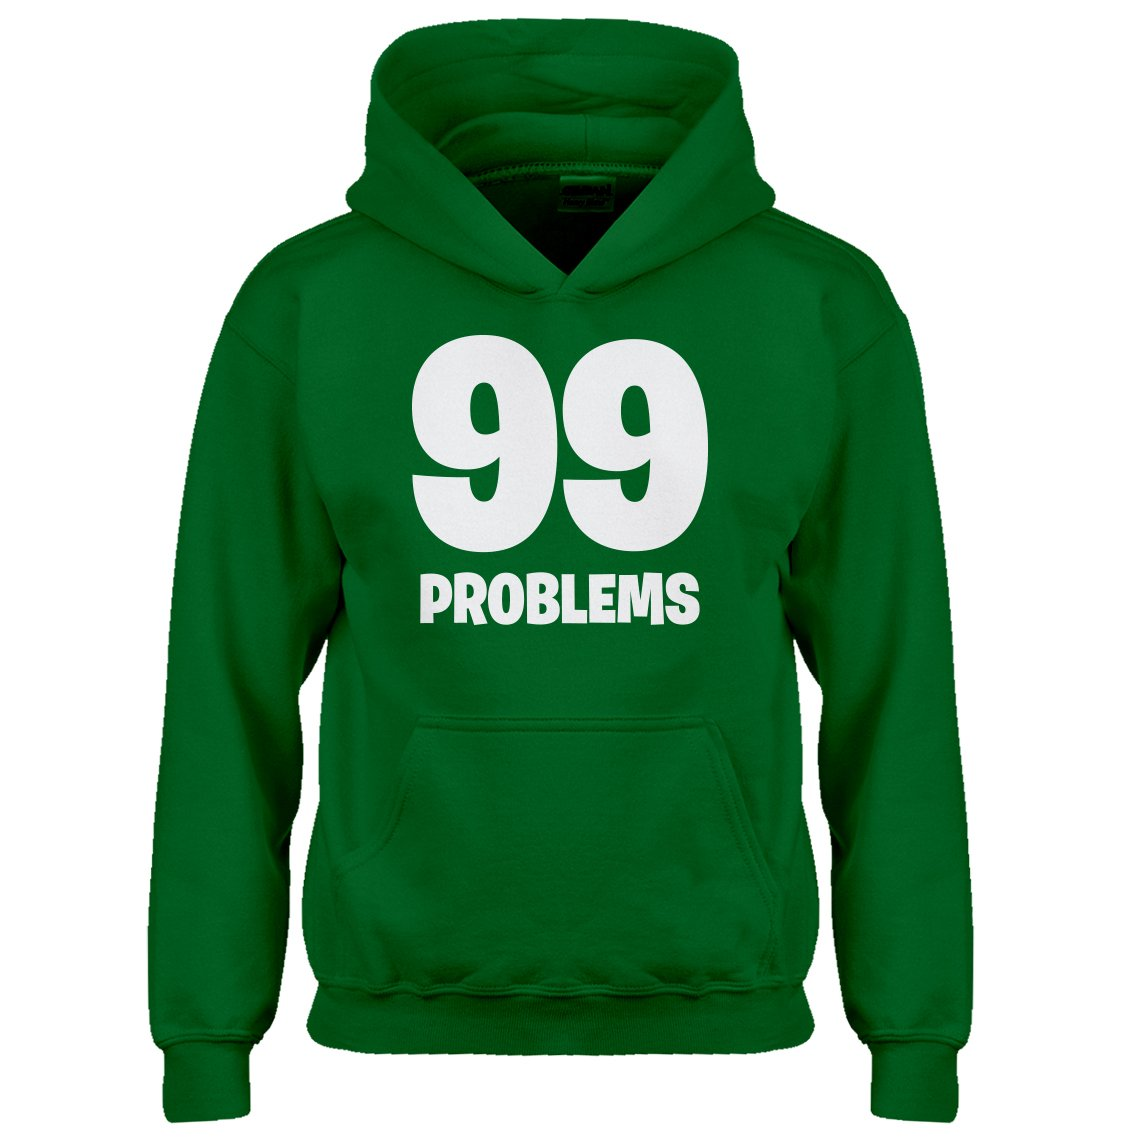 Indica Plateau 99 Problems Kids Hoodie 3199-Z